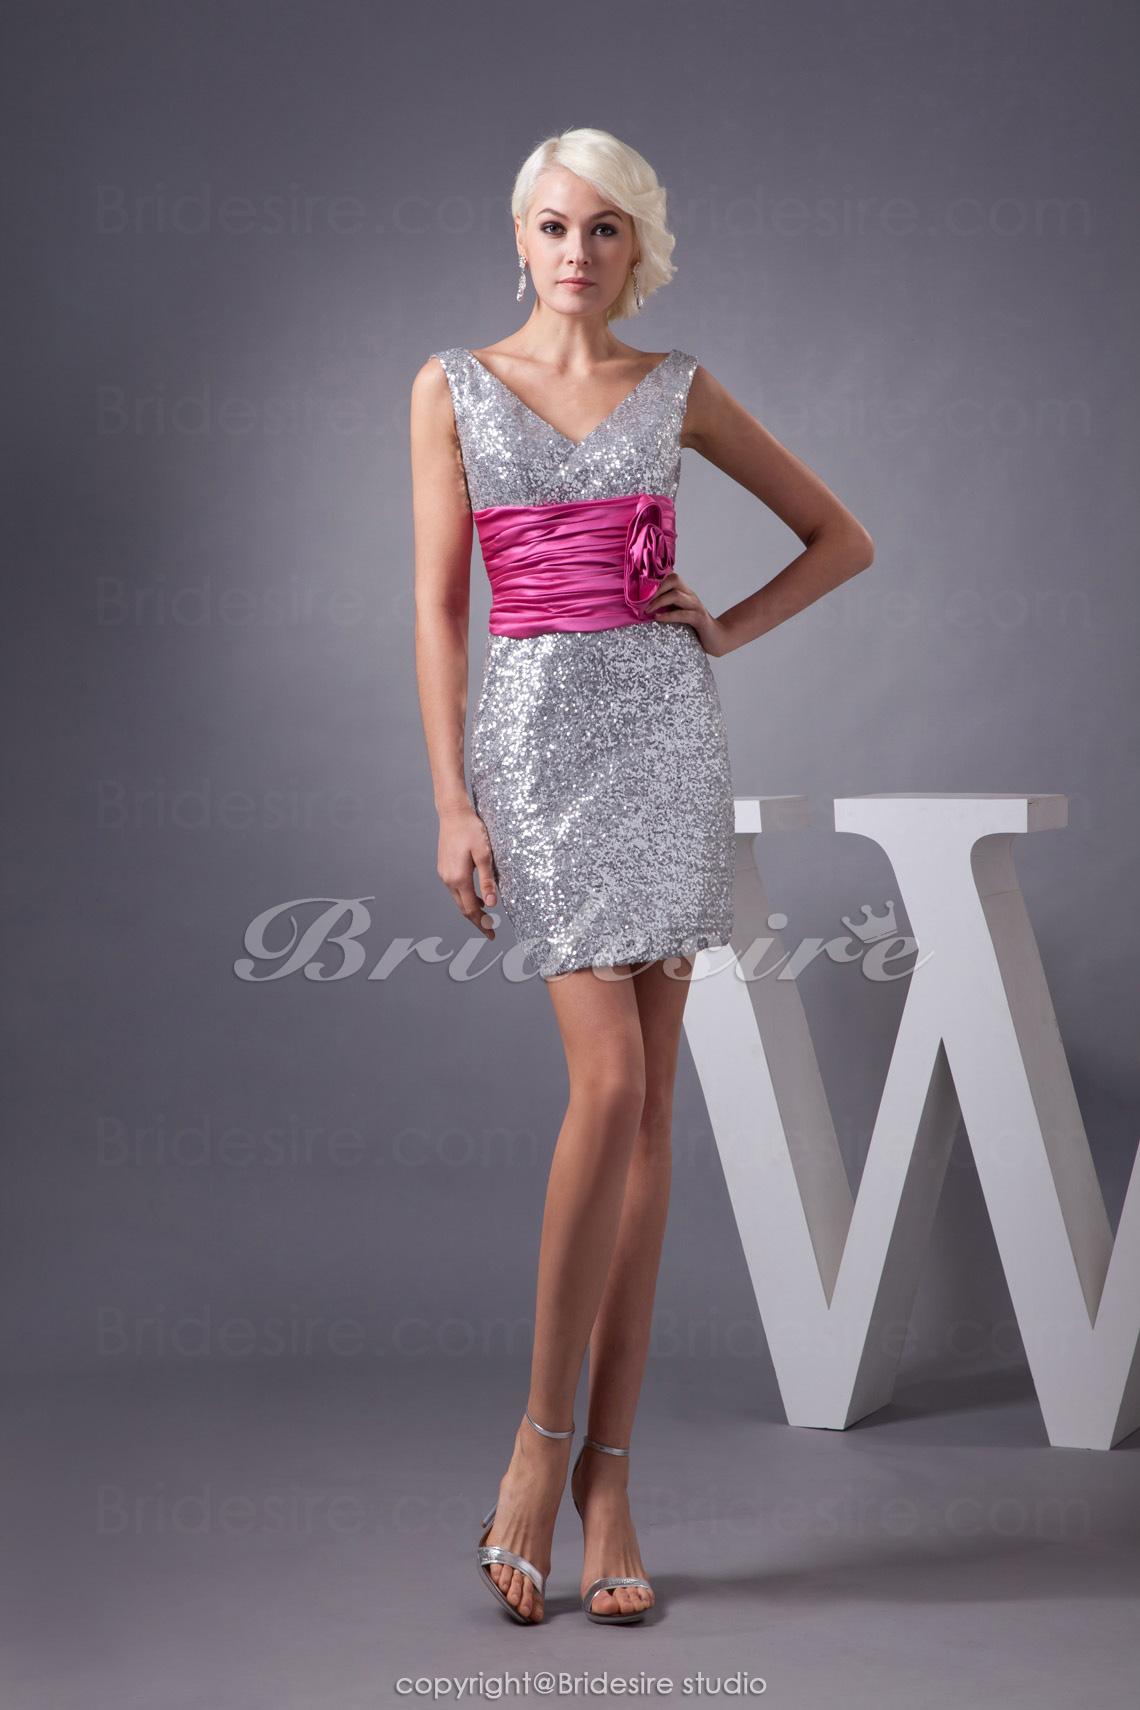 Sheath/Column V-neck Short/Mini Sleeveless Sequined Stretch Satin Dress